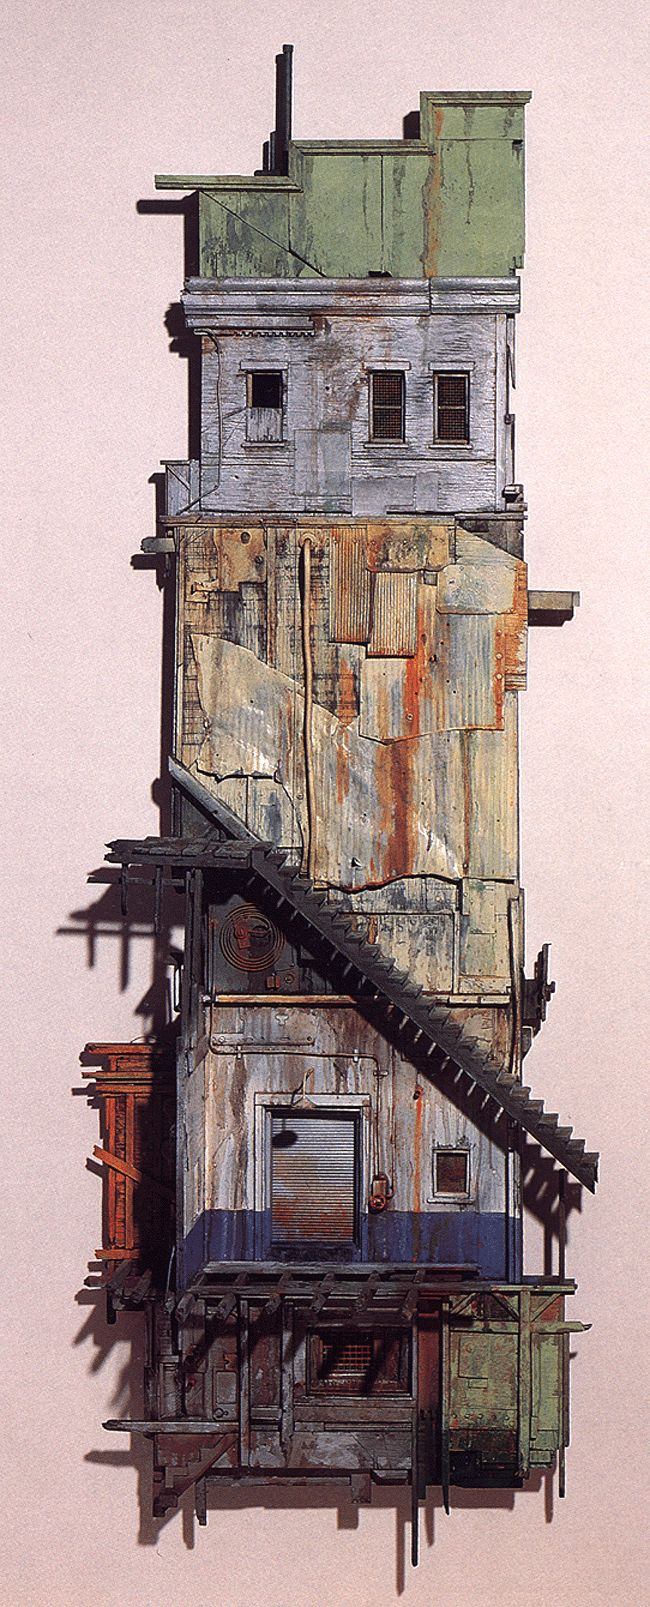 Astoria, painted wood and metal construction, by Michael C. McMillen